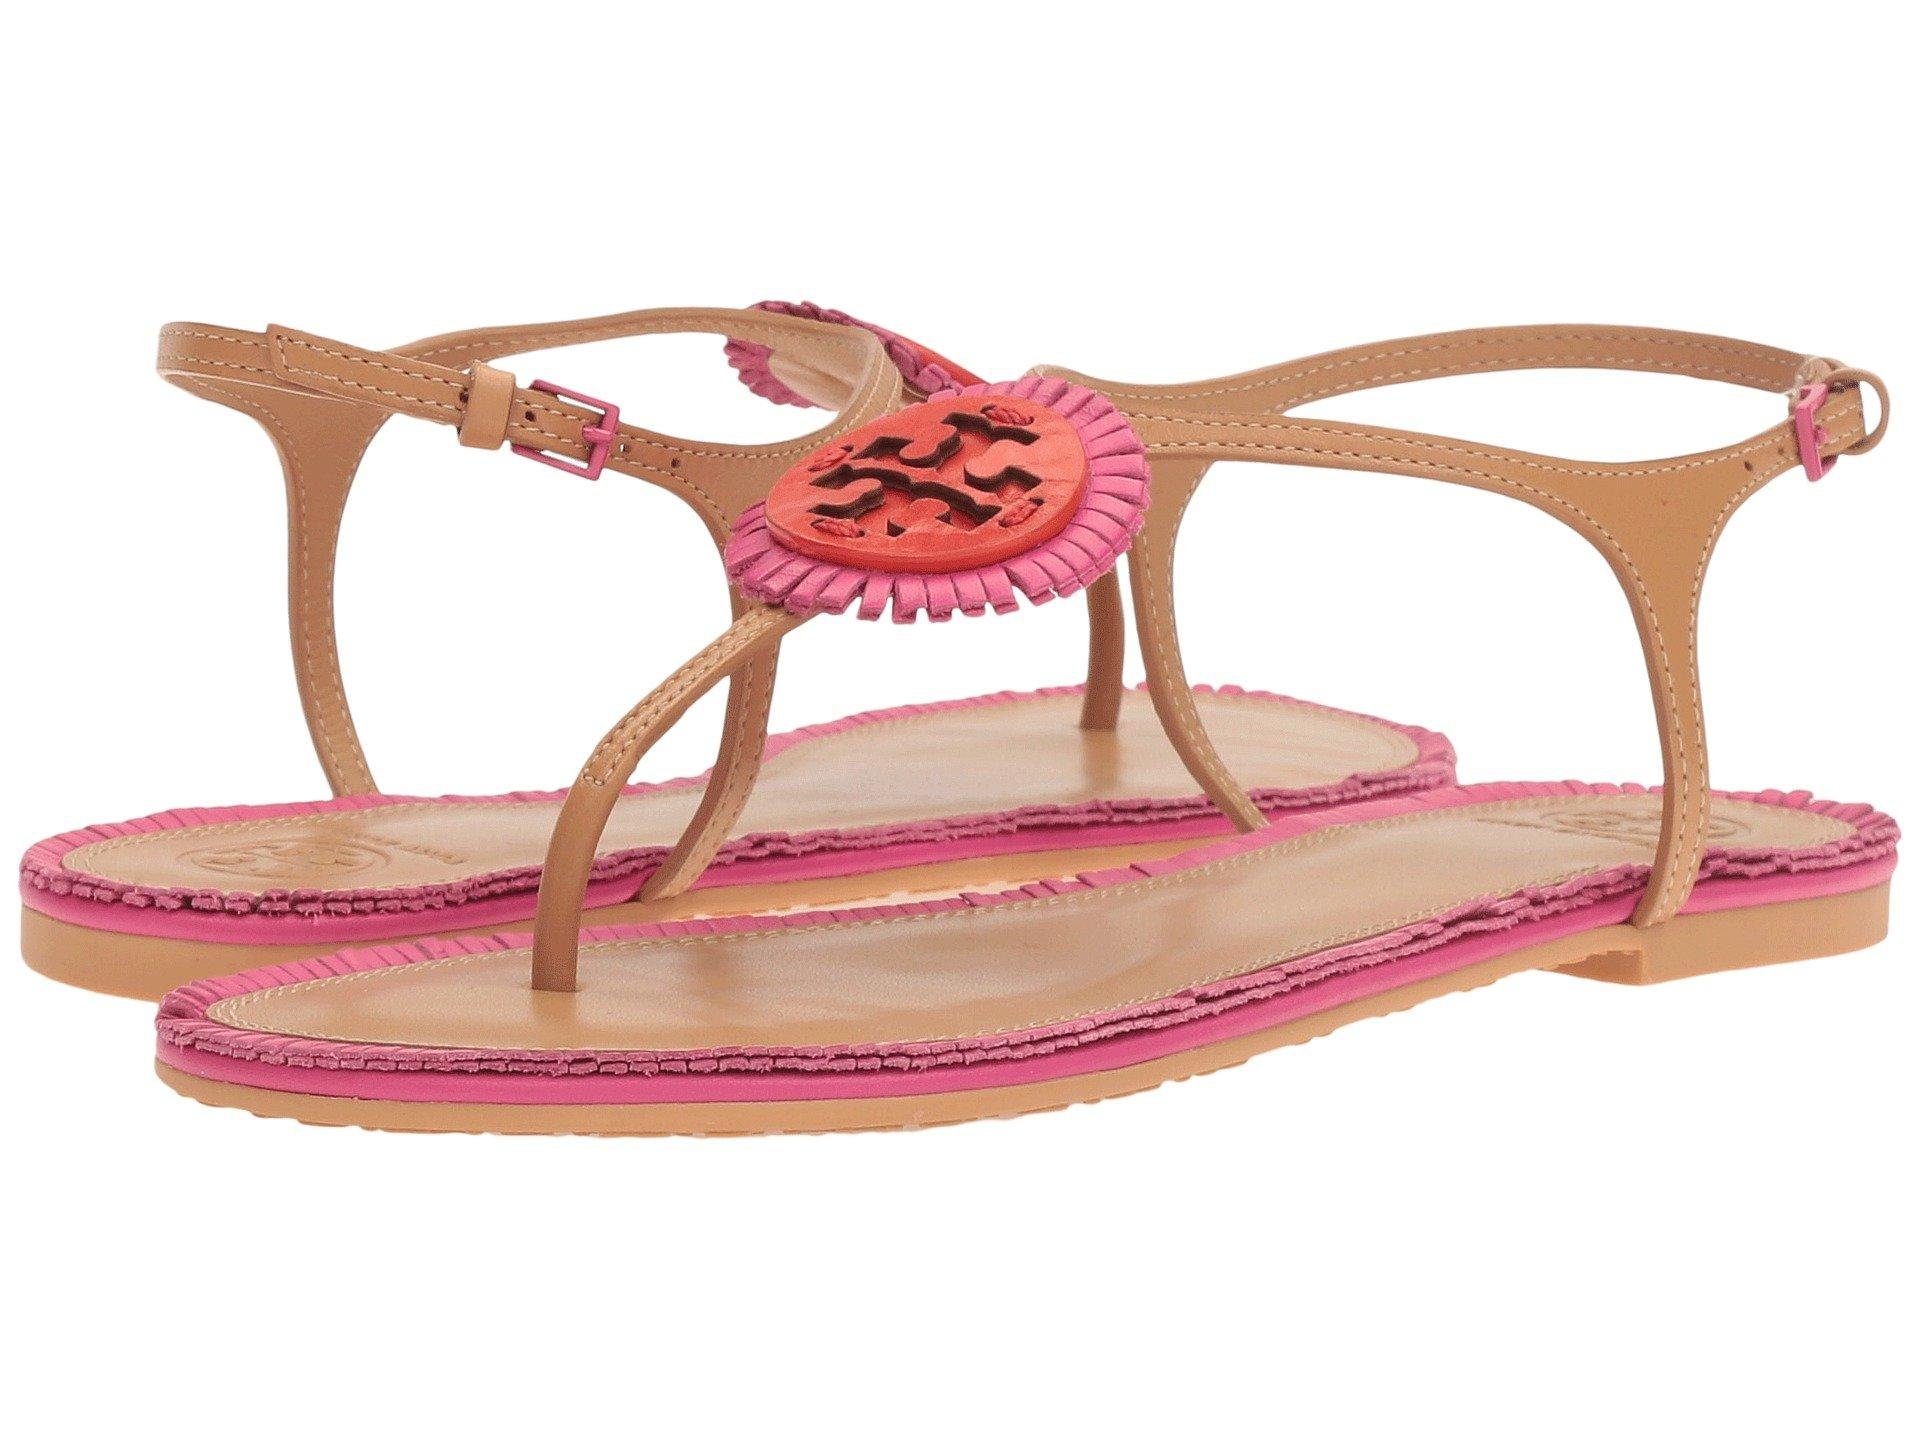 503bc3a0efae Tory Burch Miller Fringe Flat Sandal In Dusty Cypress Hibiscus ...